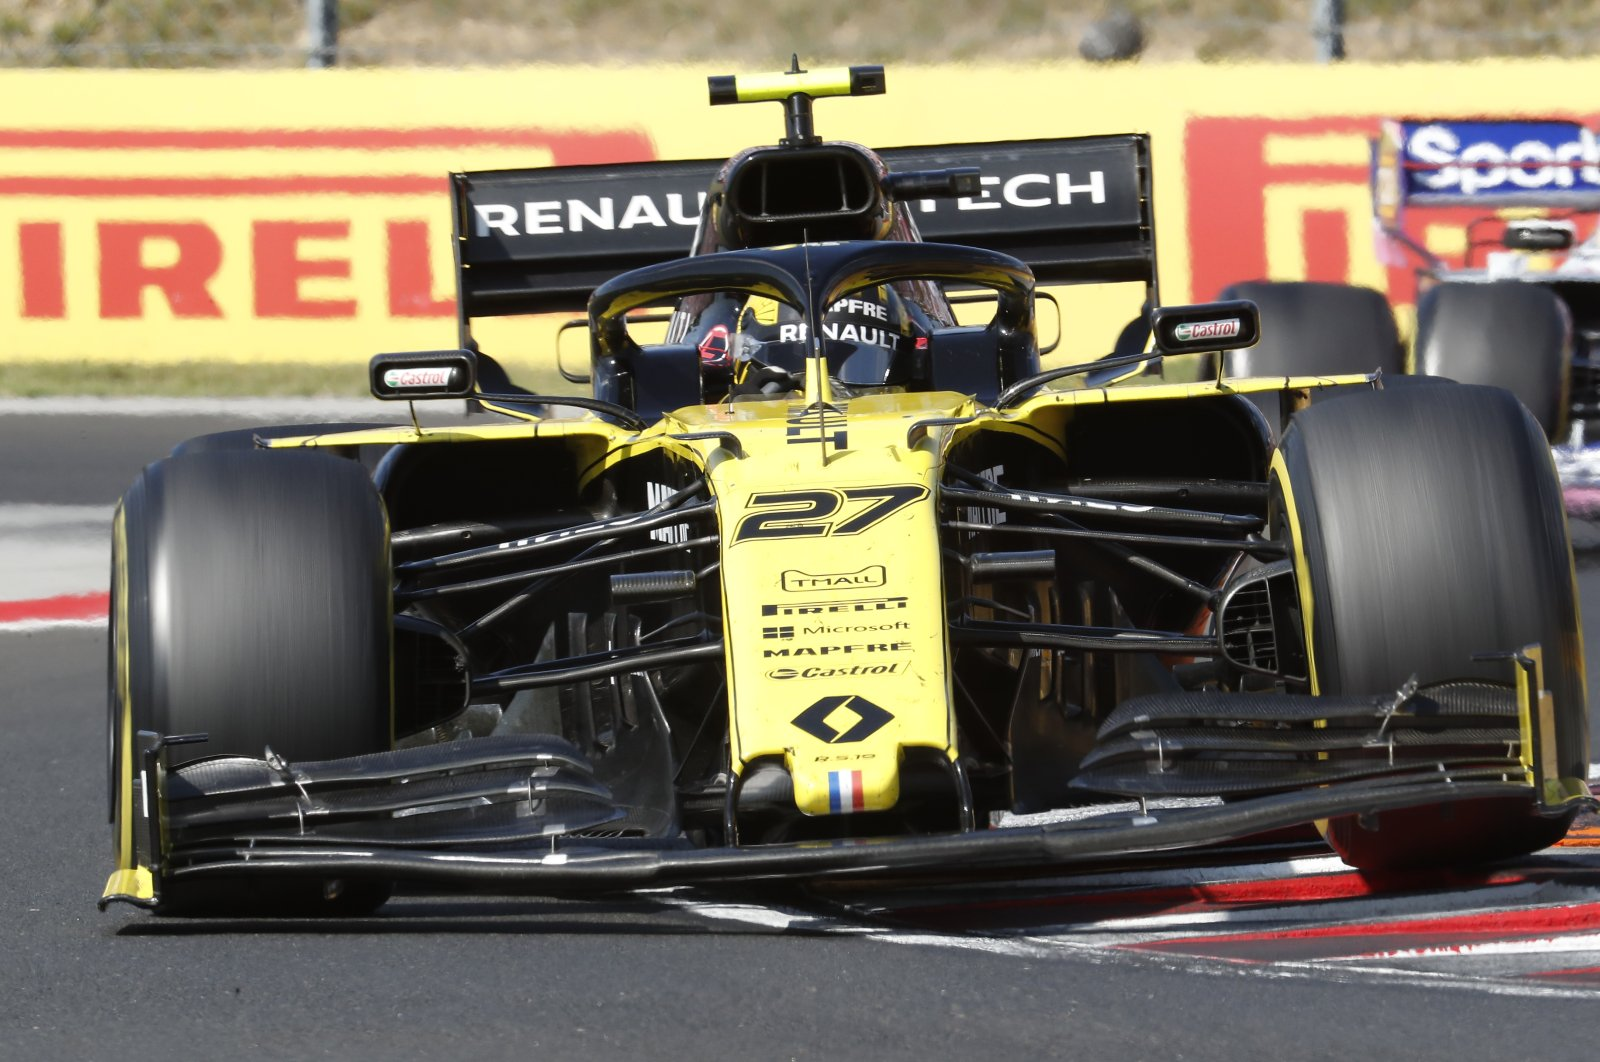 Renault driver Nico Hulkenberg during the Hungarian GP near Budapest, Hungary, Aug. 4, 2019. (AP Photo)